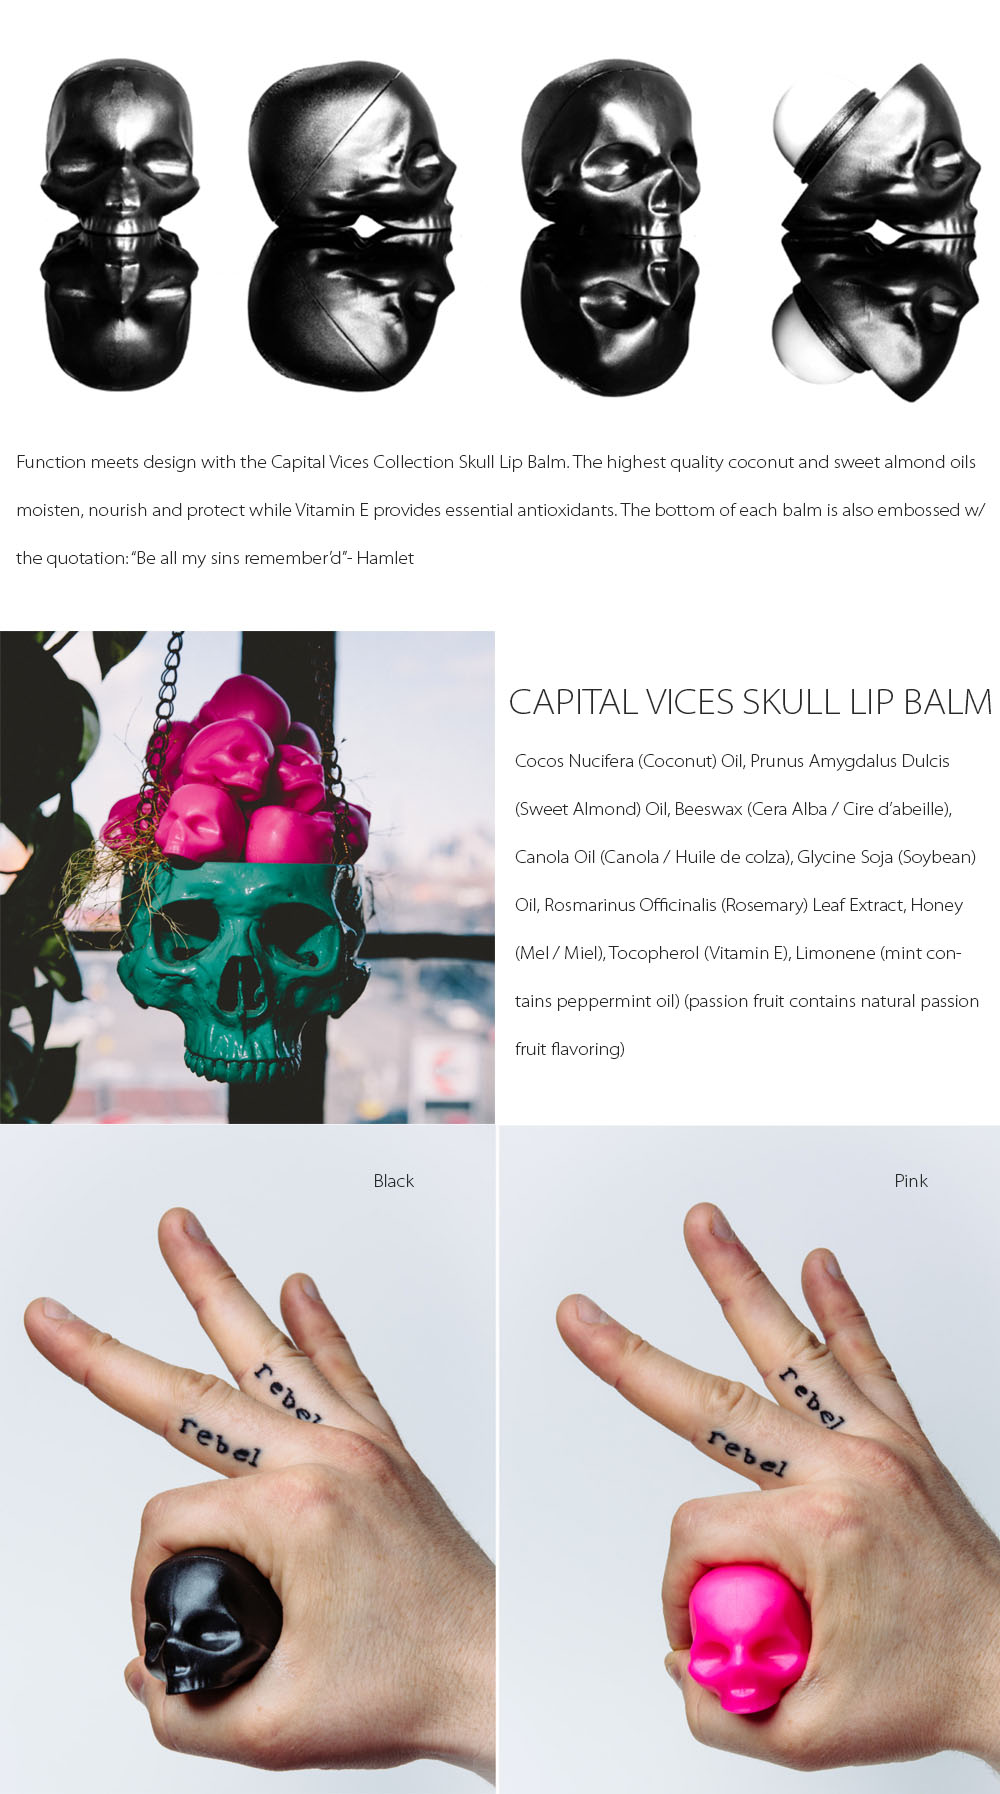 Capital Vices skull Lip Balm Function meets design